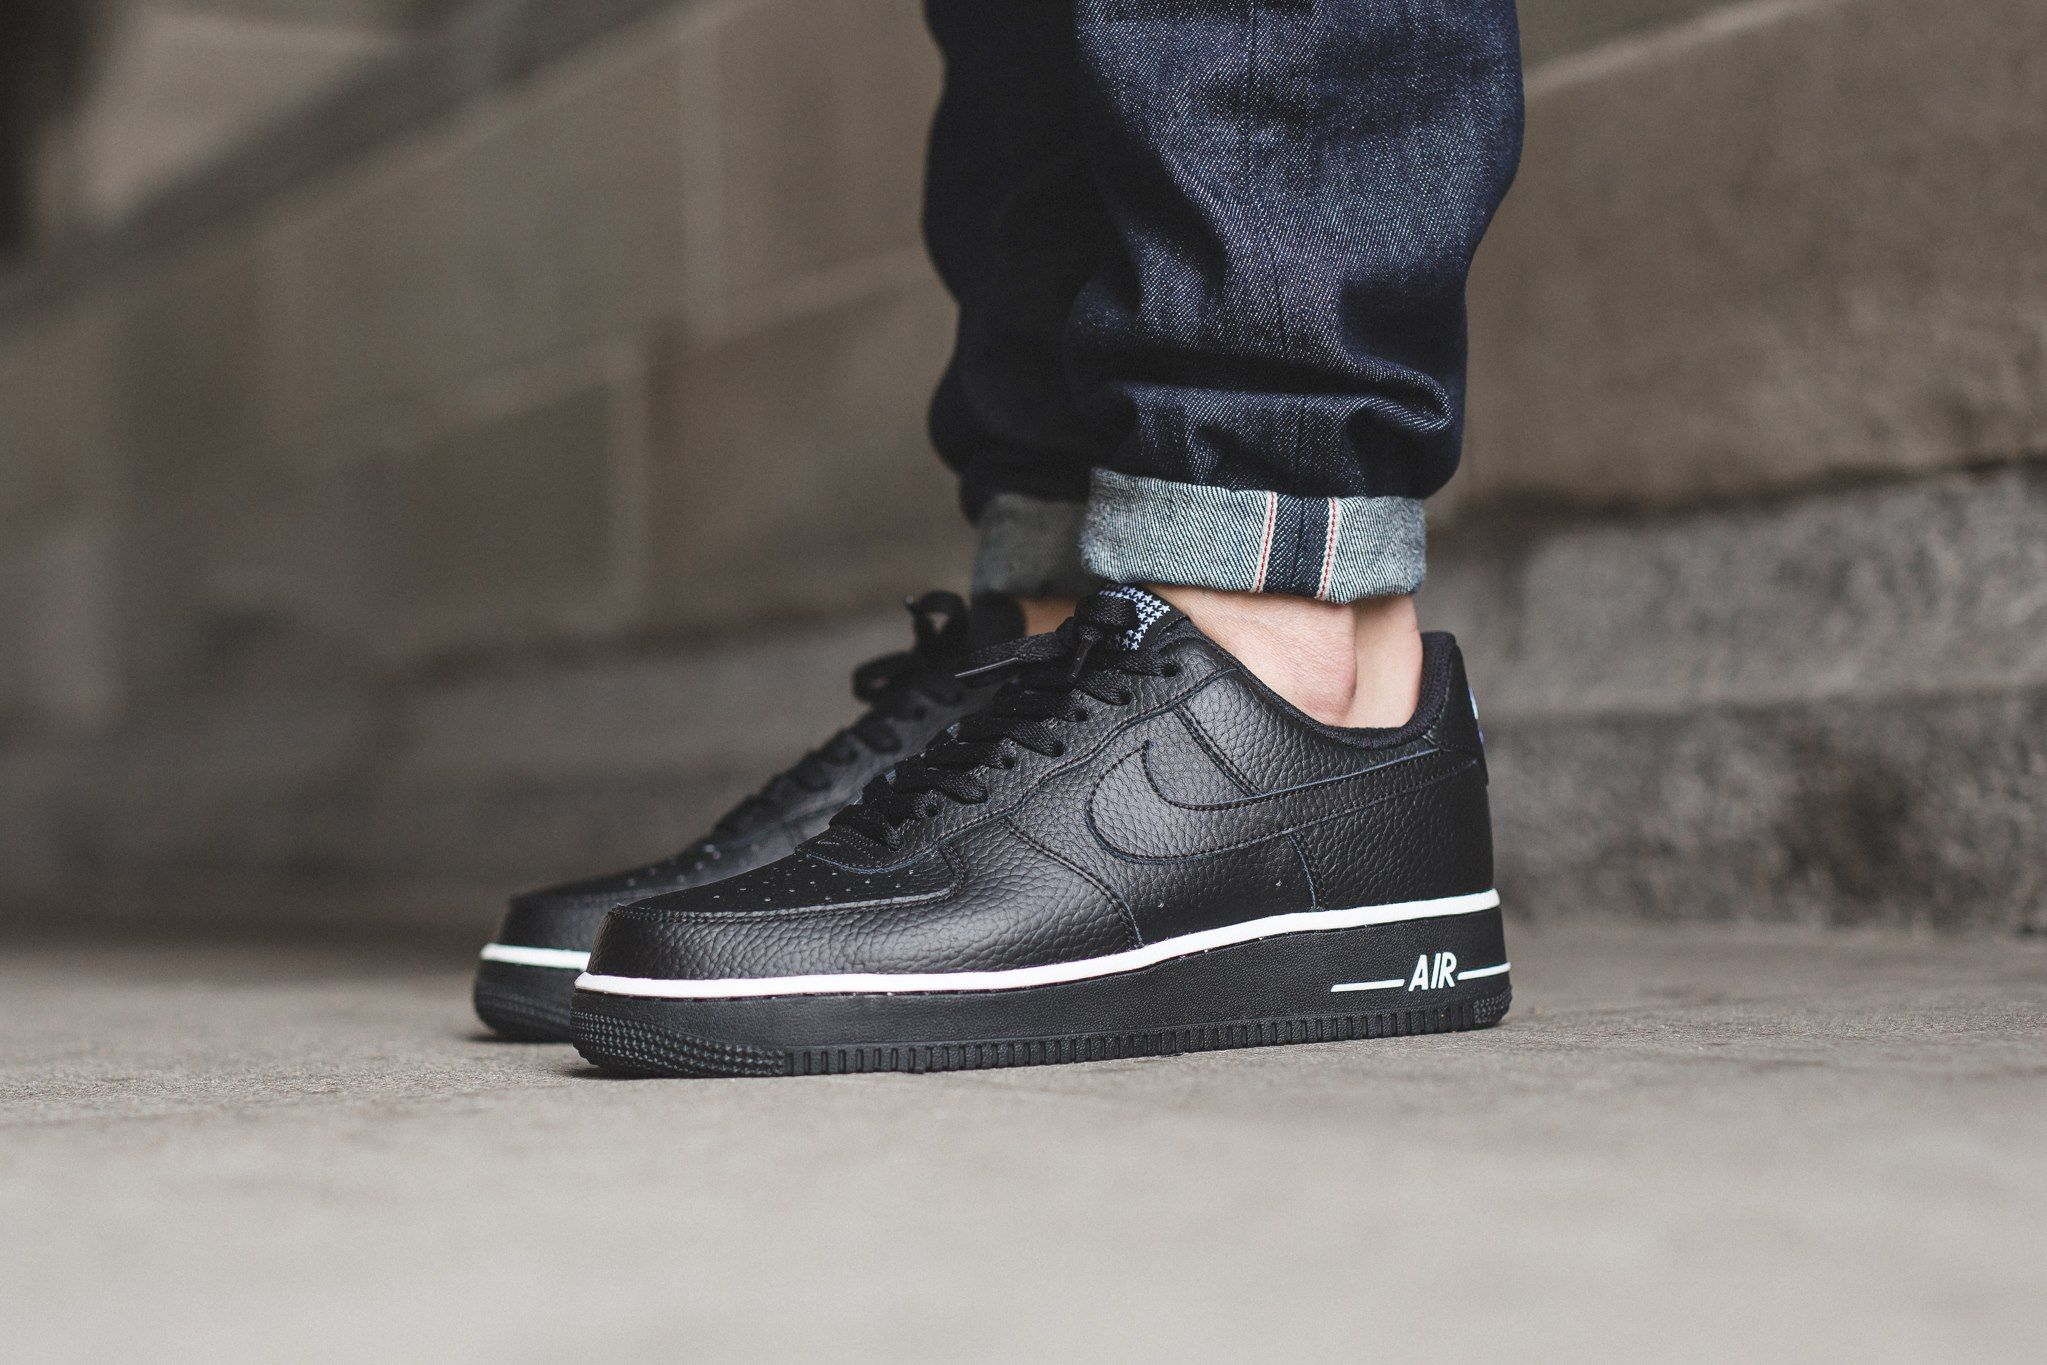 reputable site fd71c 39ded NIKE AIR FORCE 1 LOW STAR-BLACK-BLACK-2